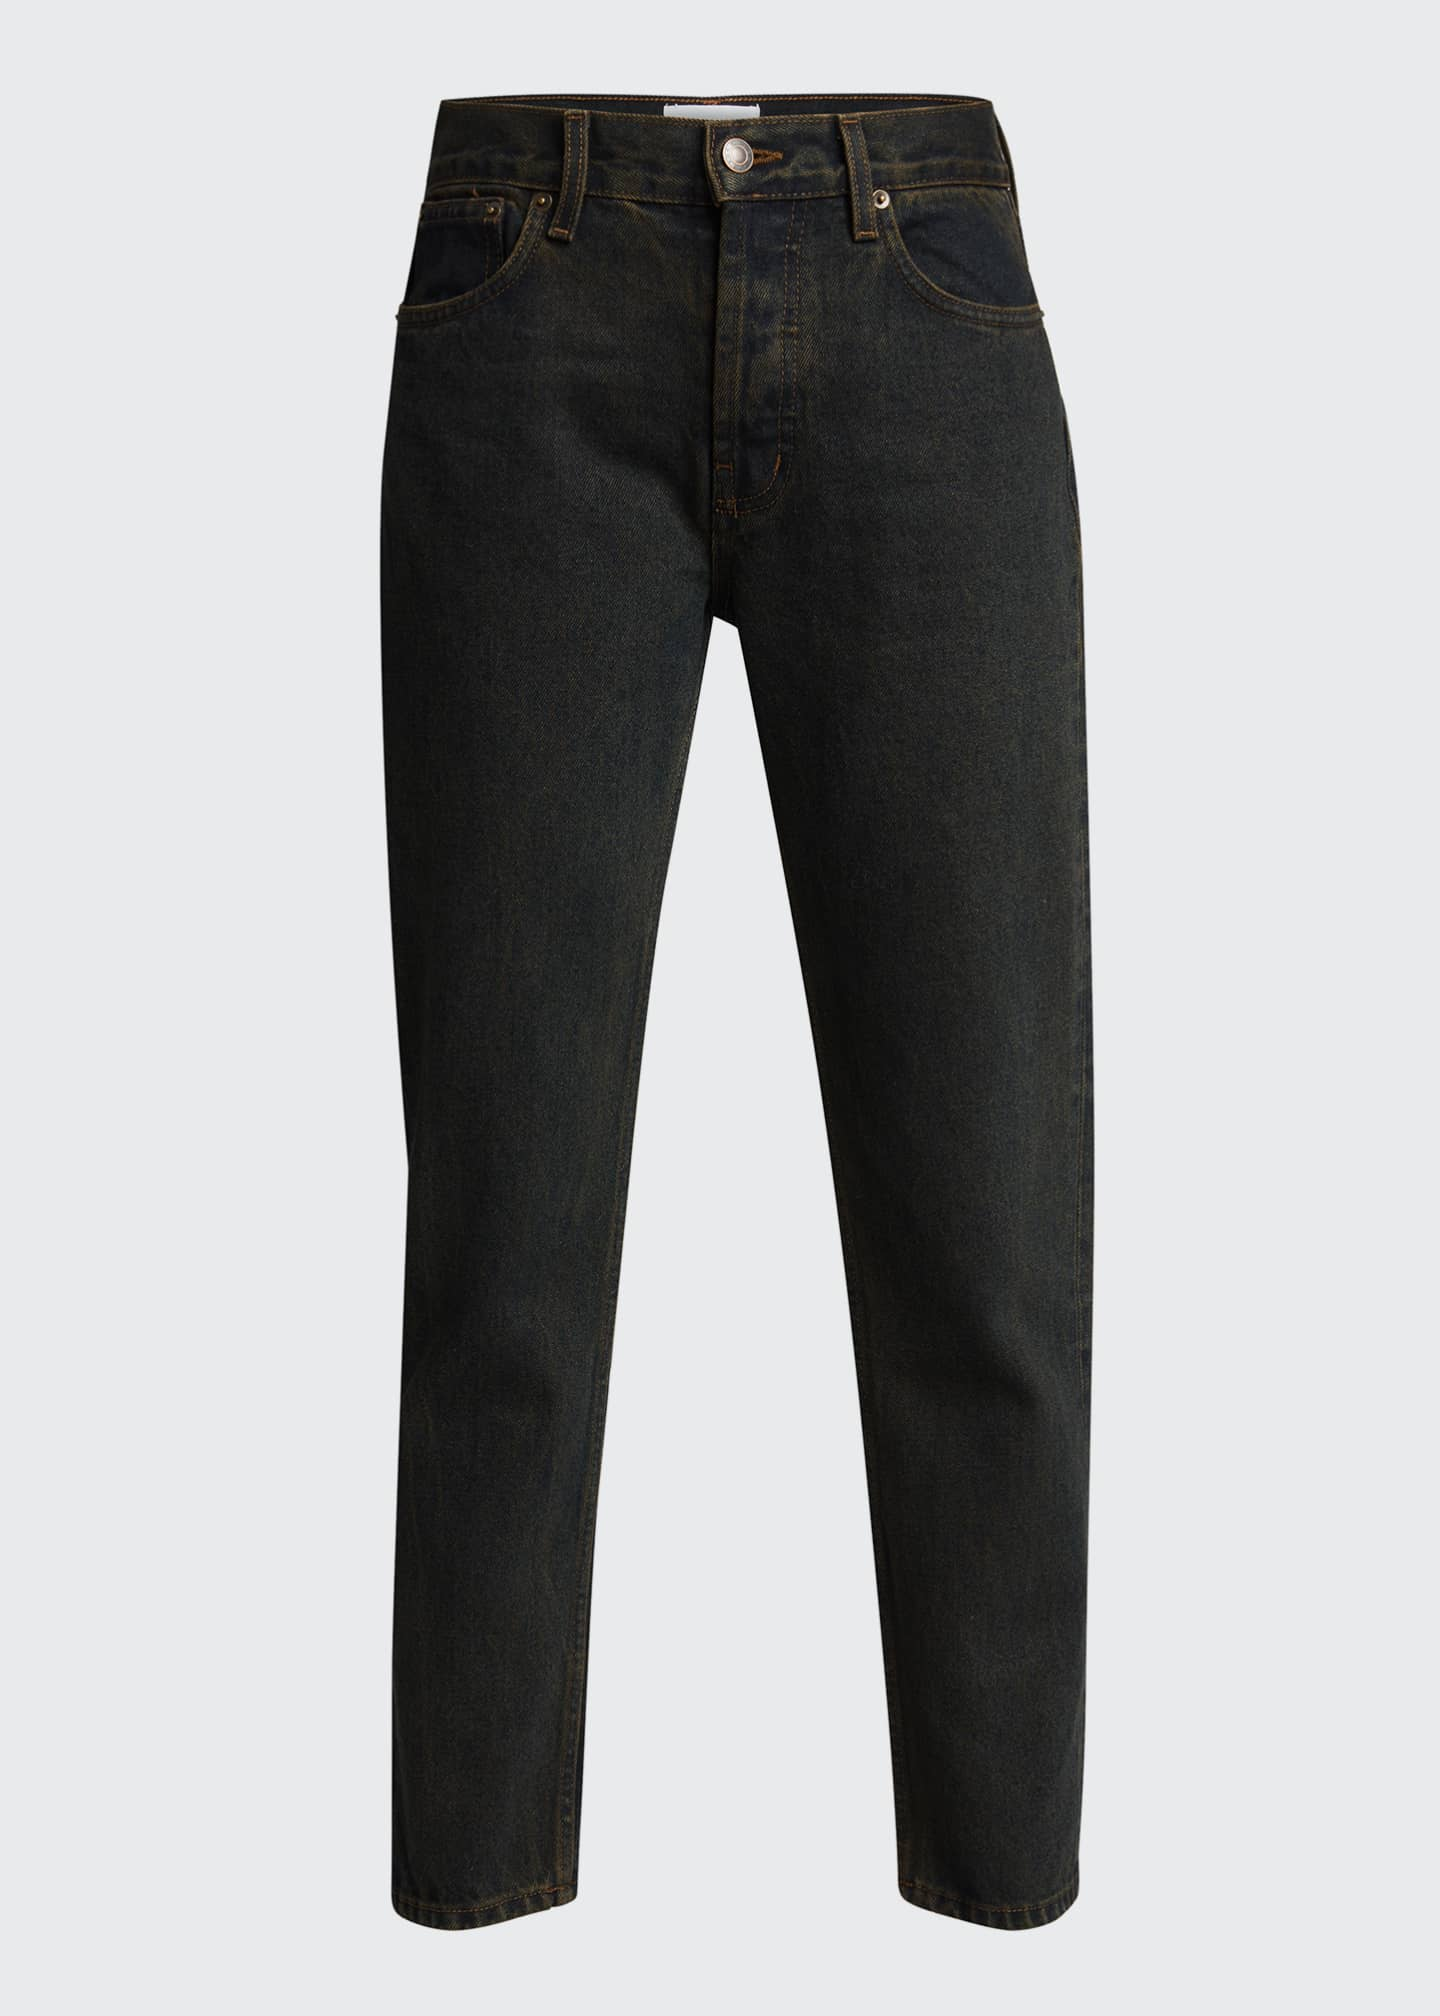 Image 5 of 5: The Rae Original Cropped Jeans